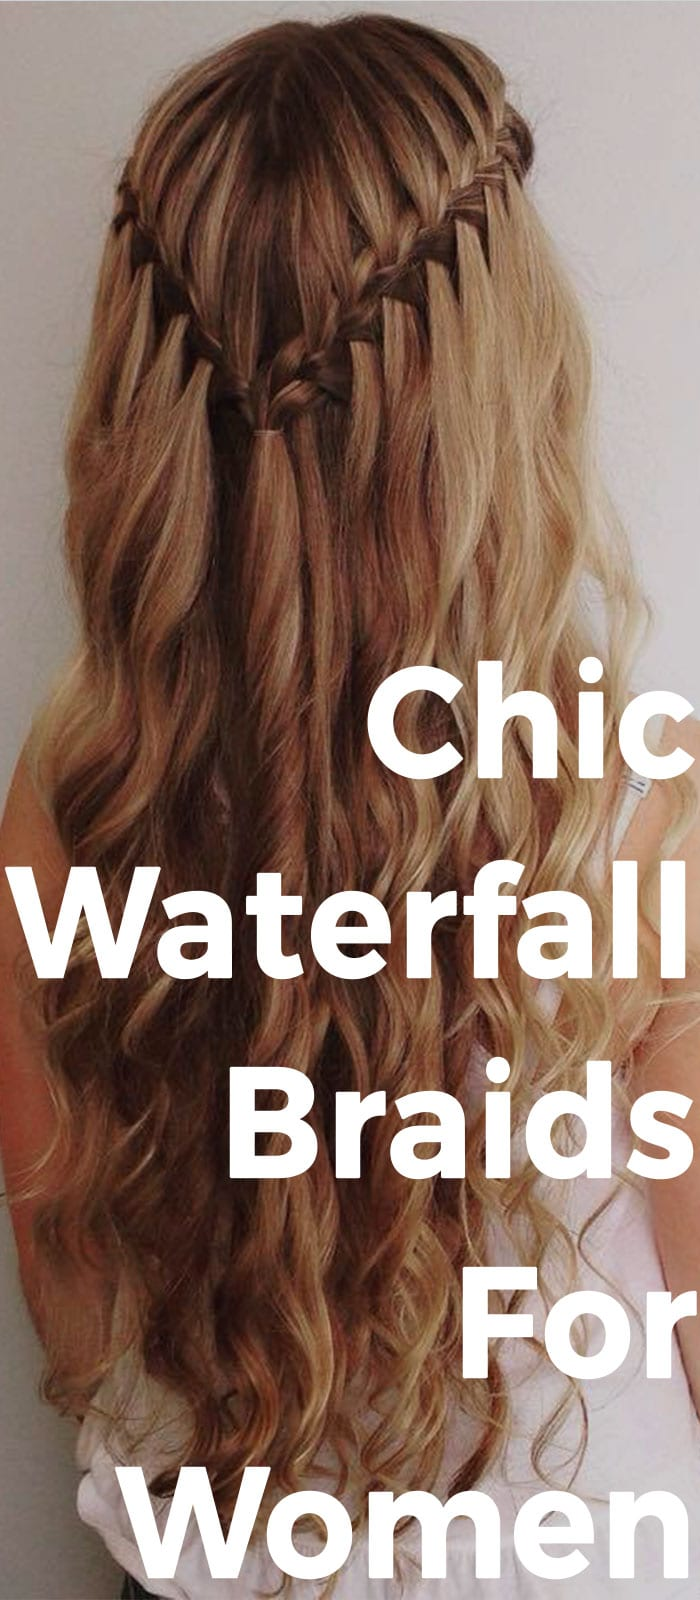 Chic Waterfall Braids For Women